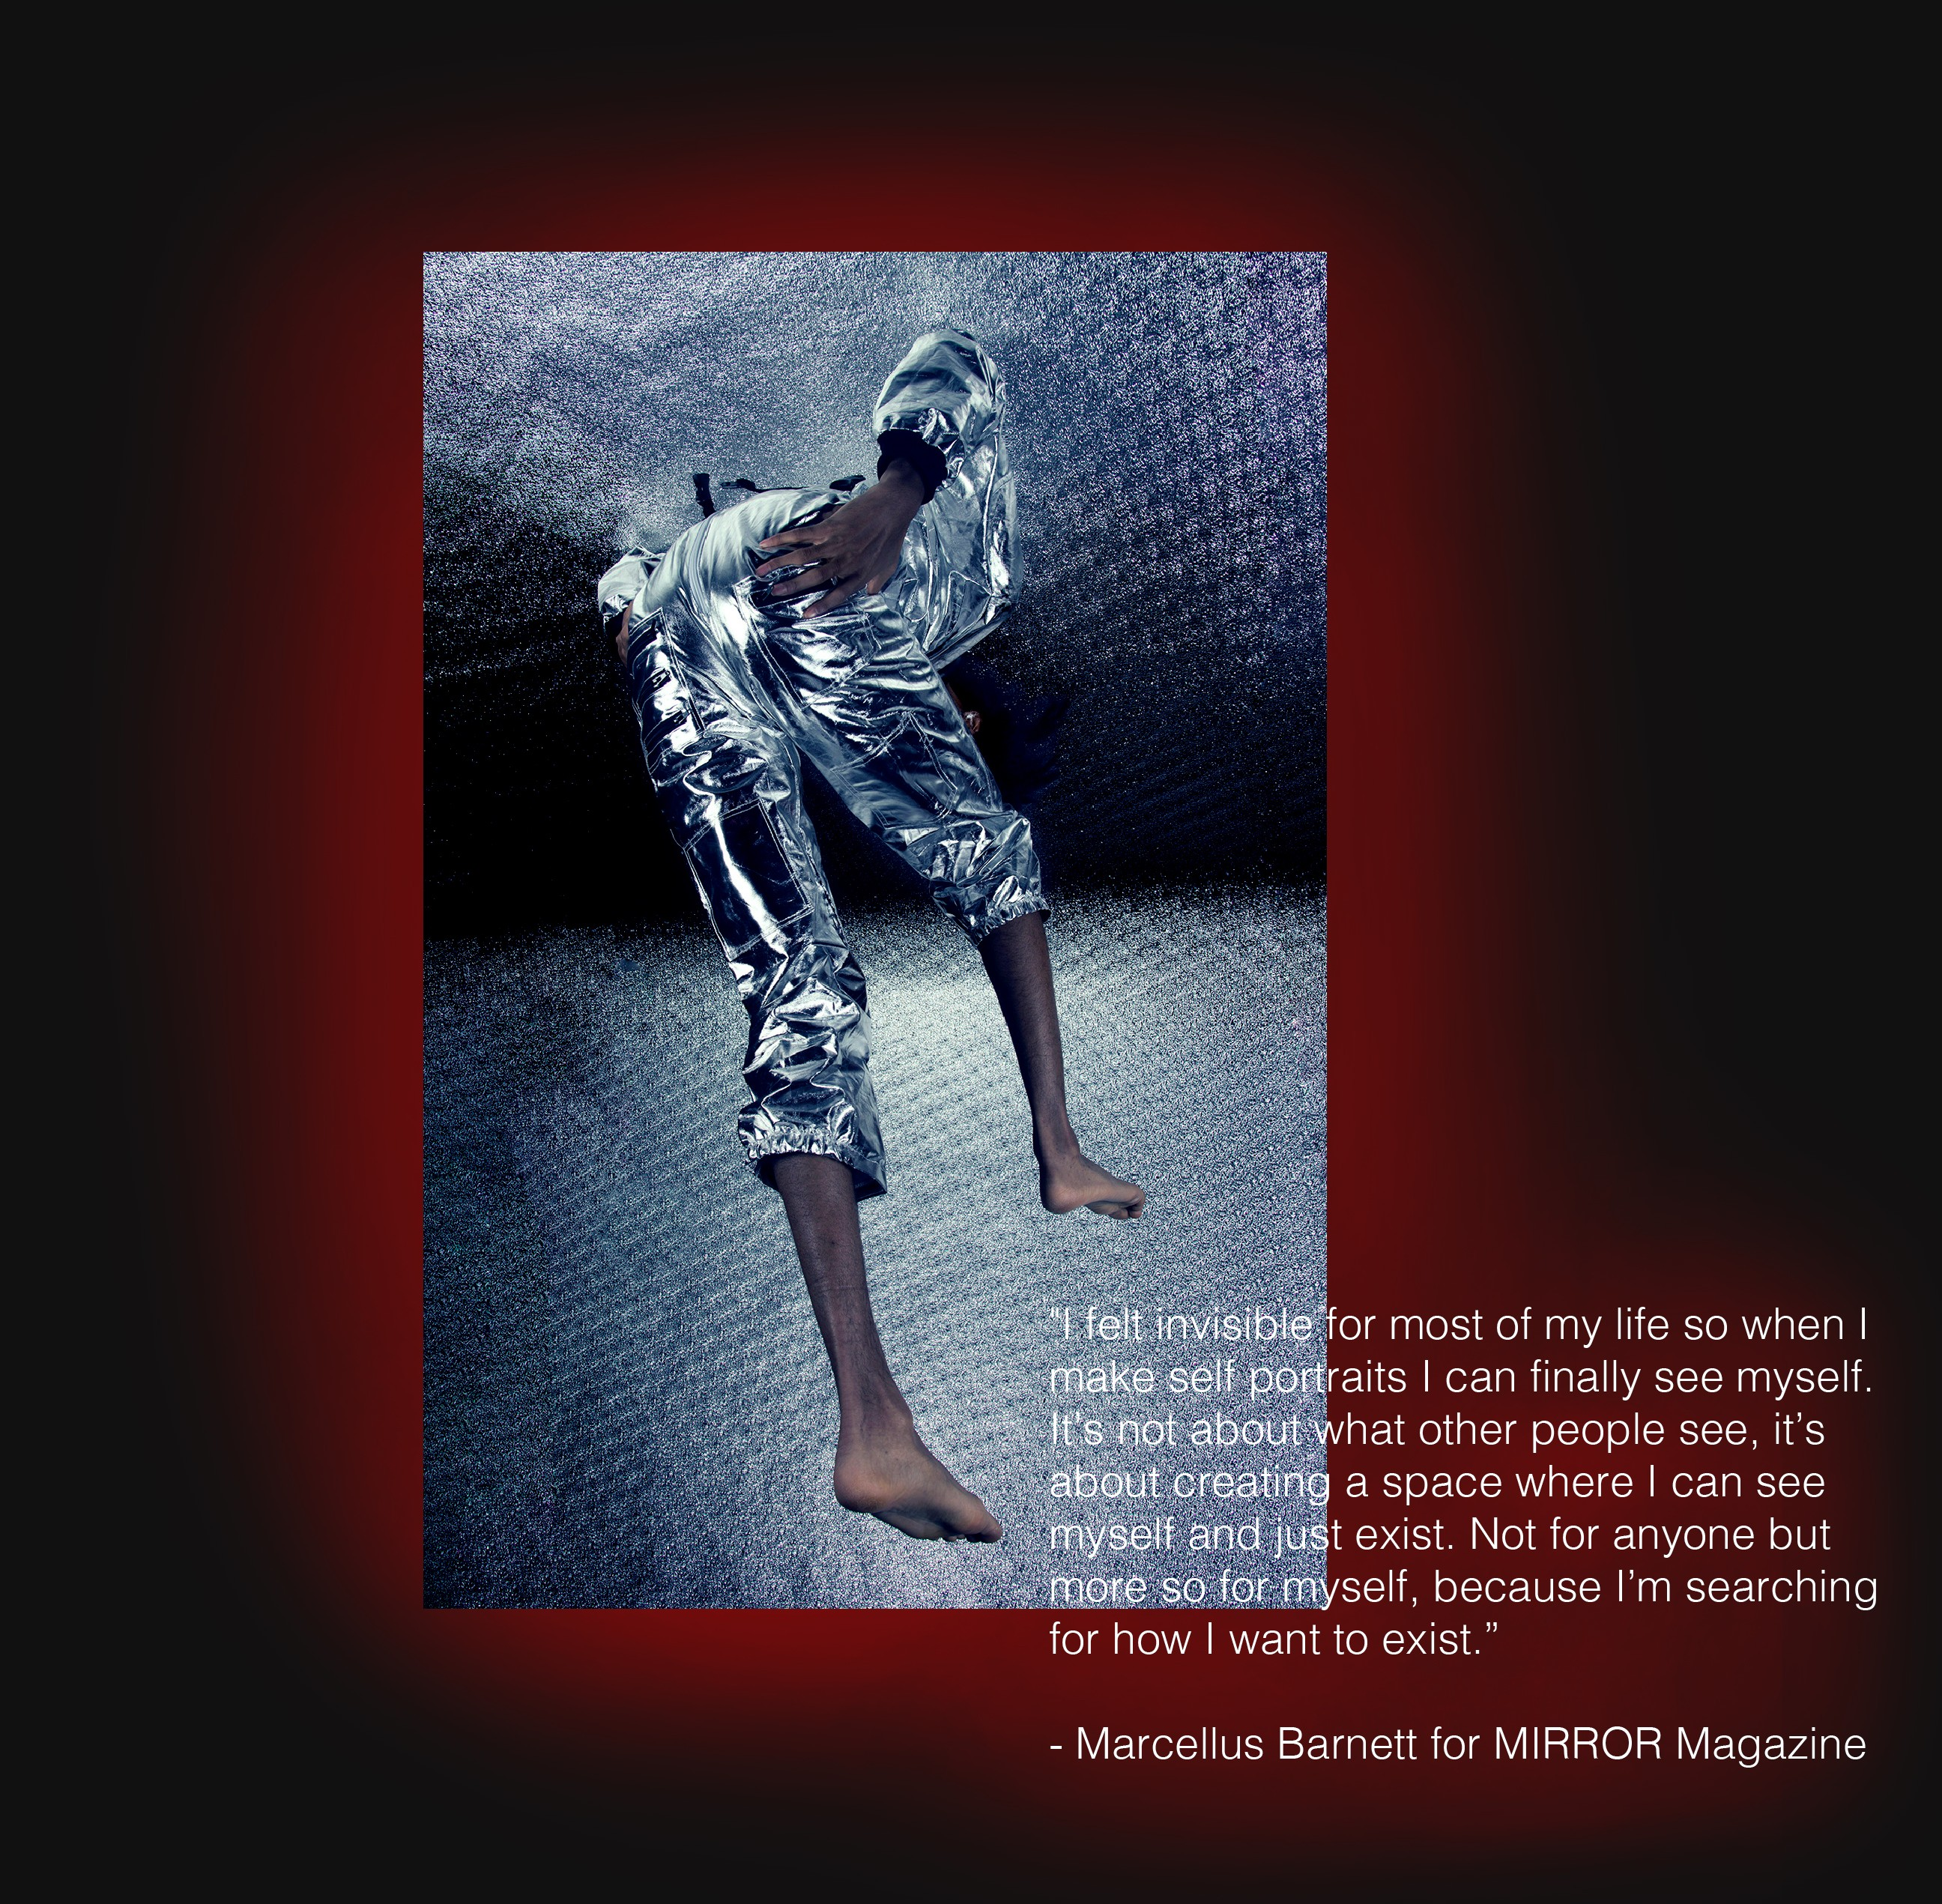 Editorial Photography with select quote from interview with Marcellus Barnett